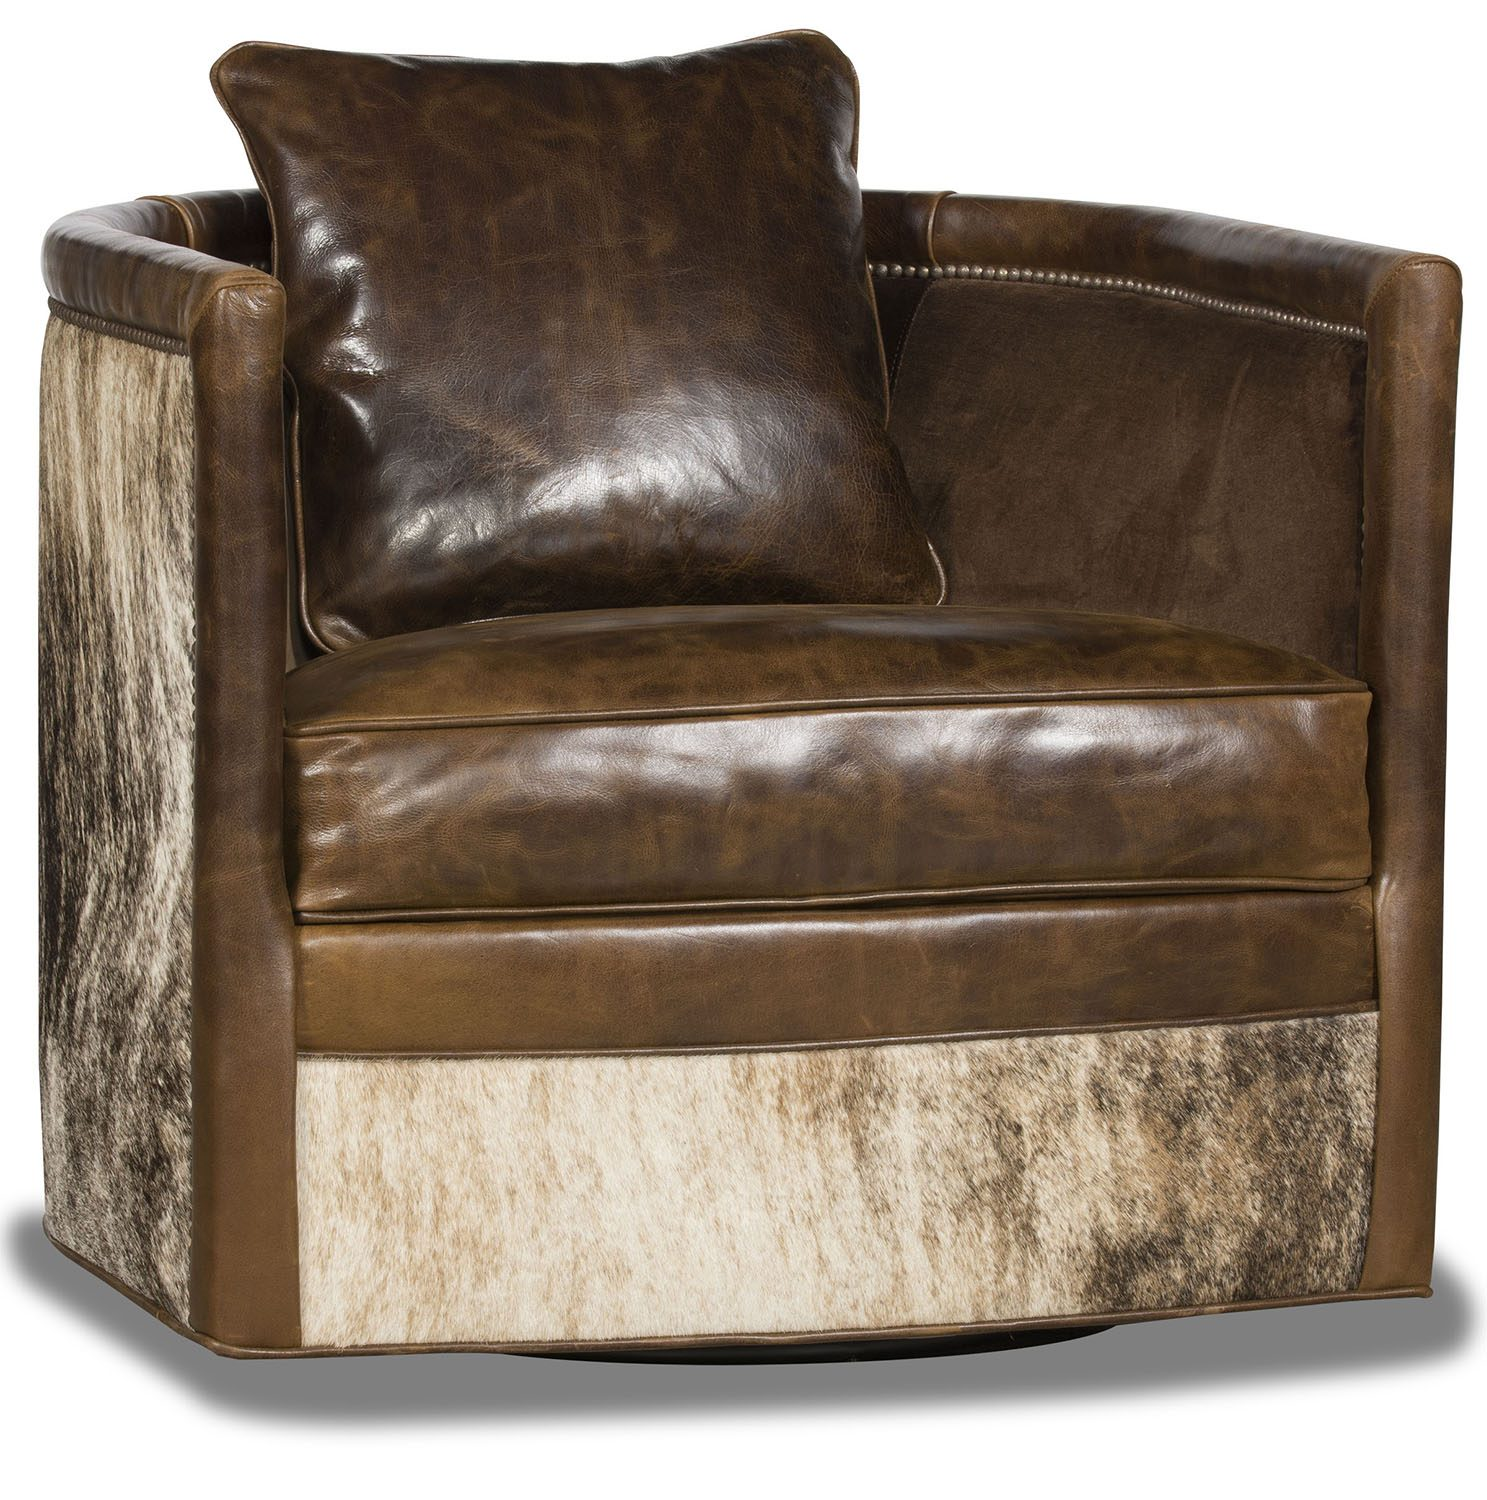 Paul Robert Swivel Chair